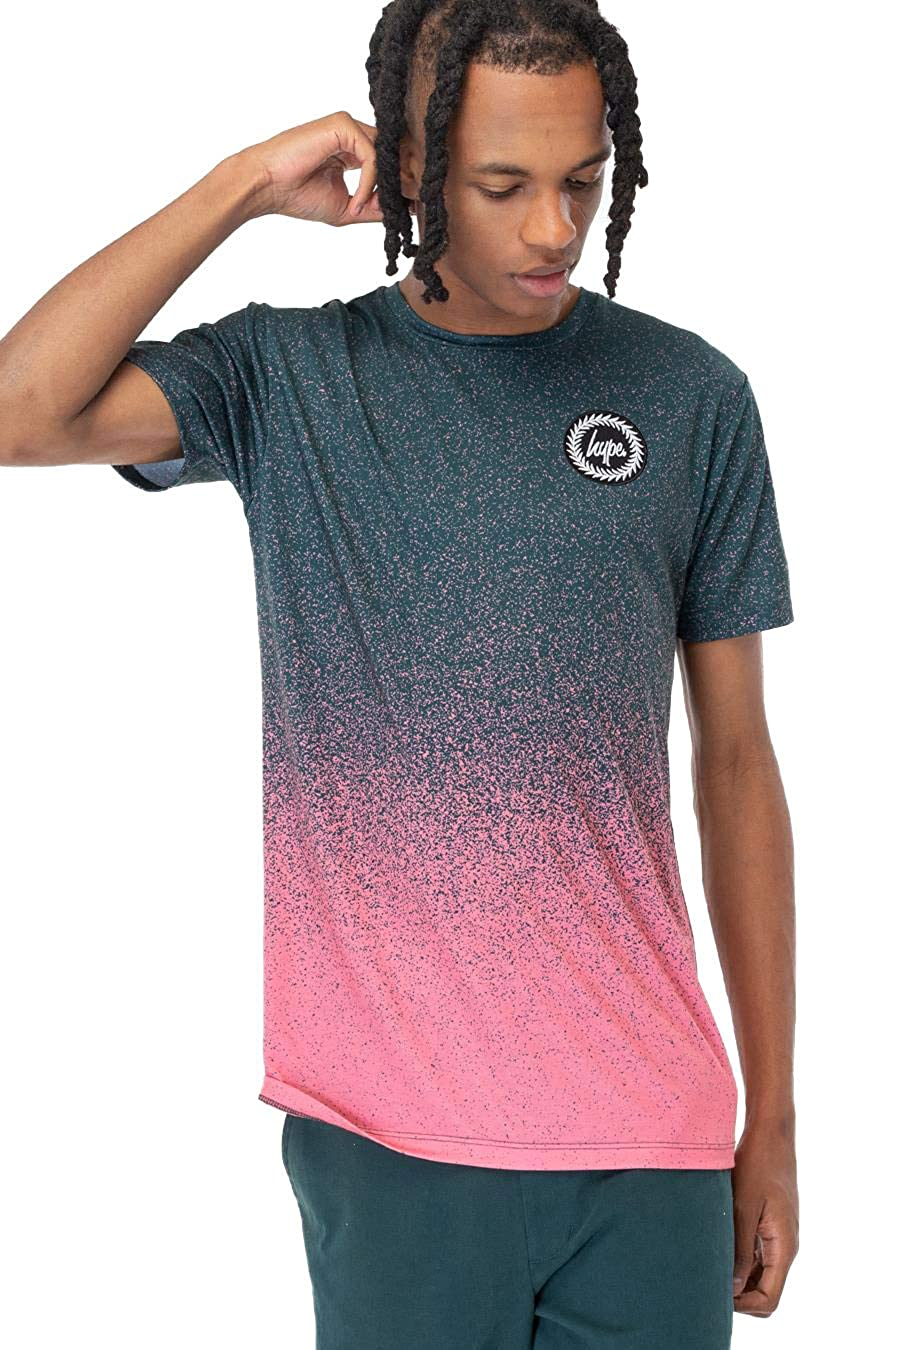 Speckle Fade Mens T-Shirts by Hype